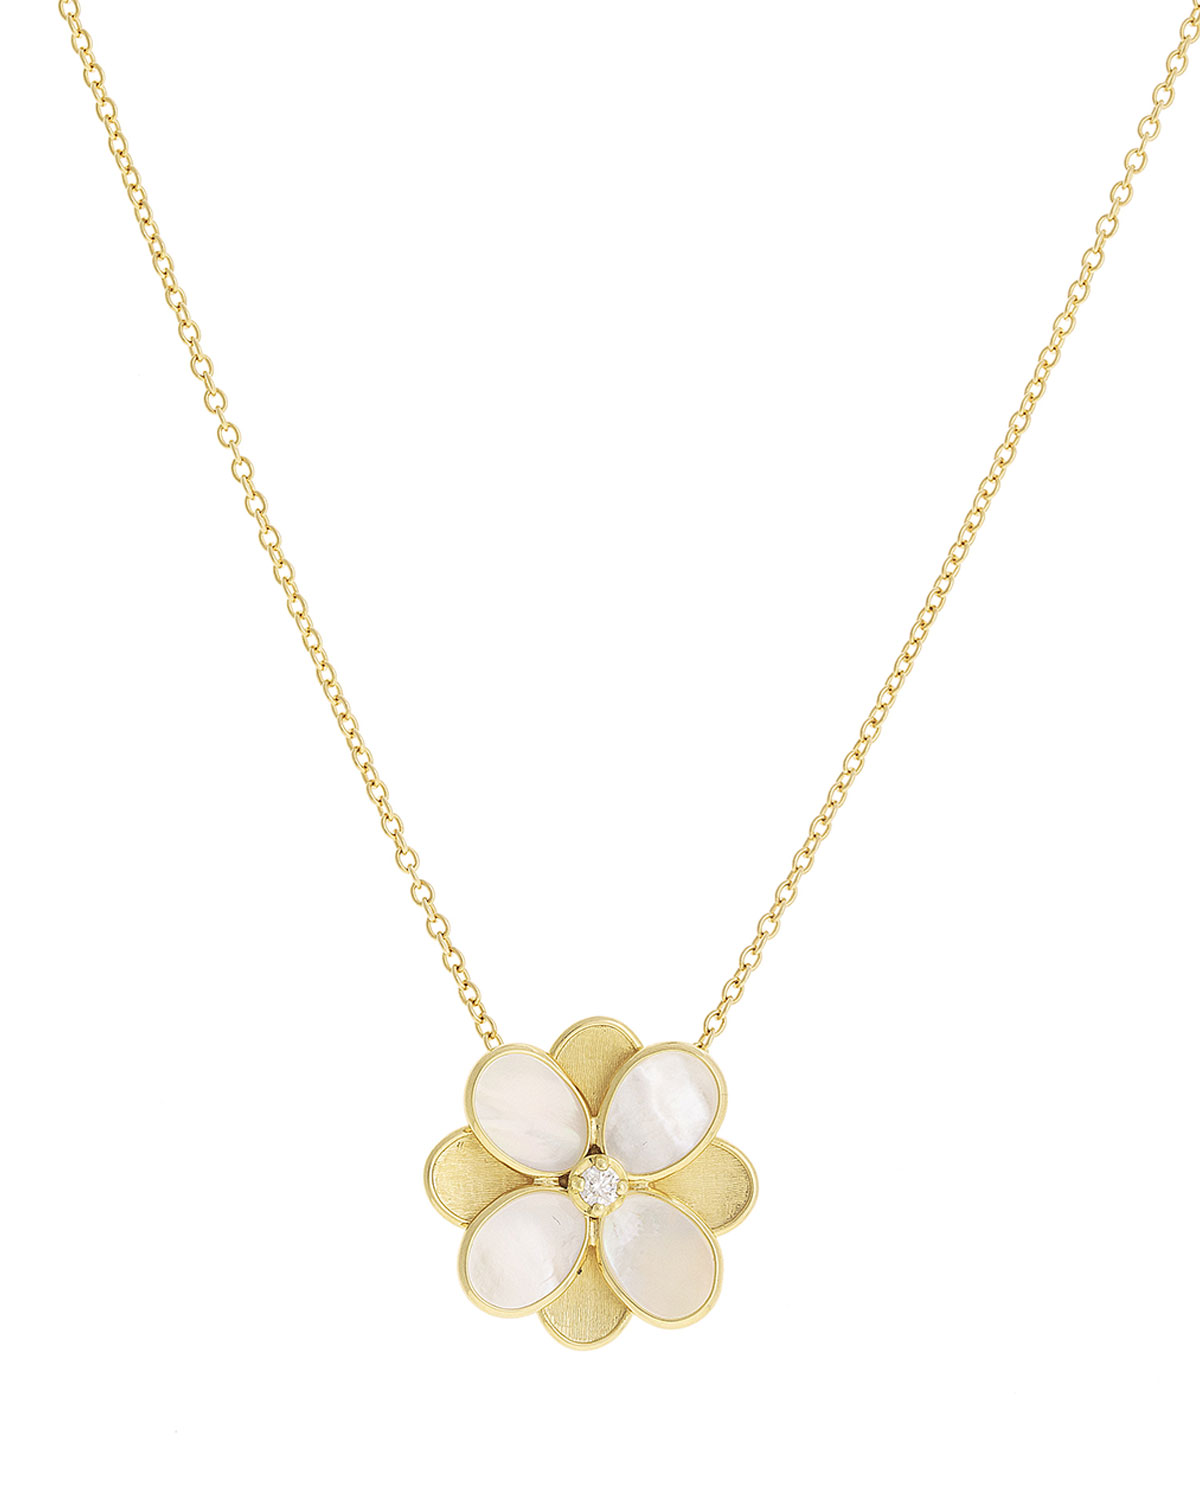 Marco Bicego Petali Mother-of-Pearl Pendant Necklace